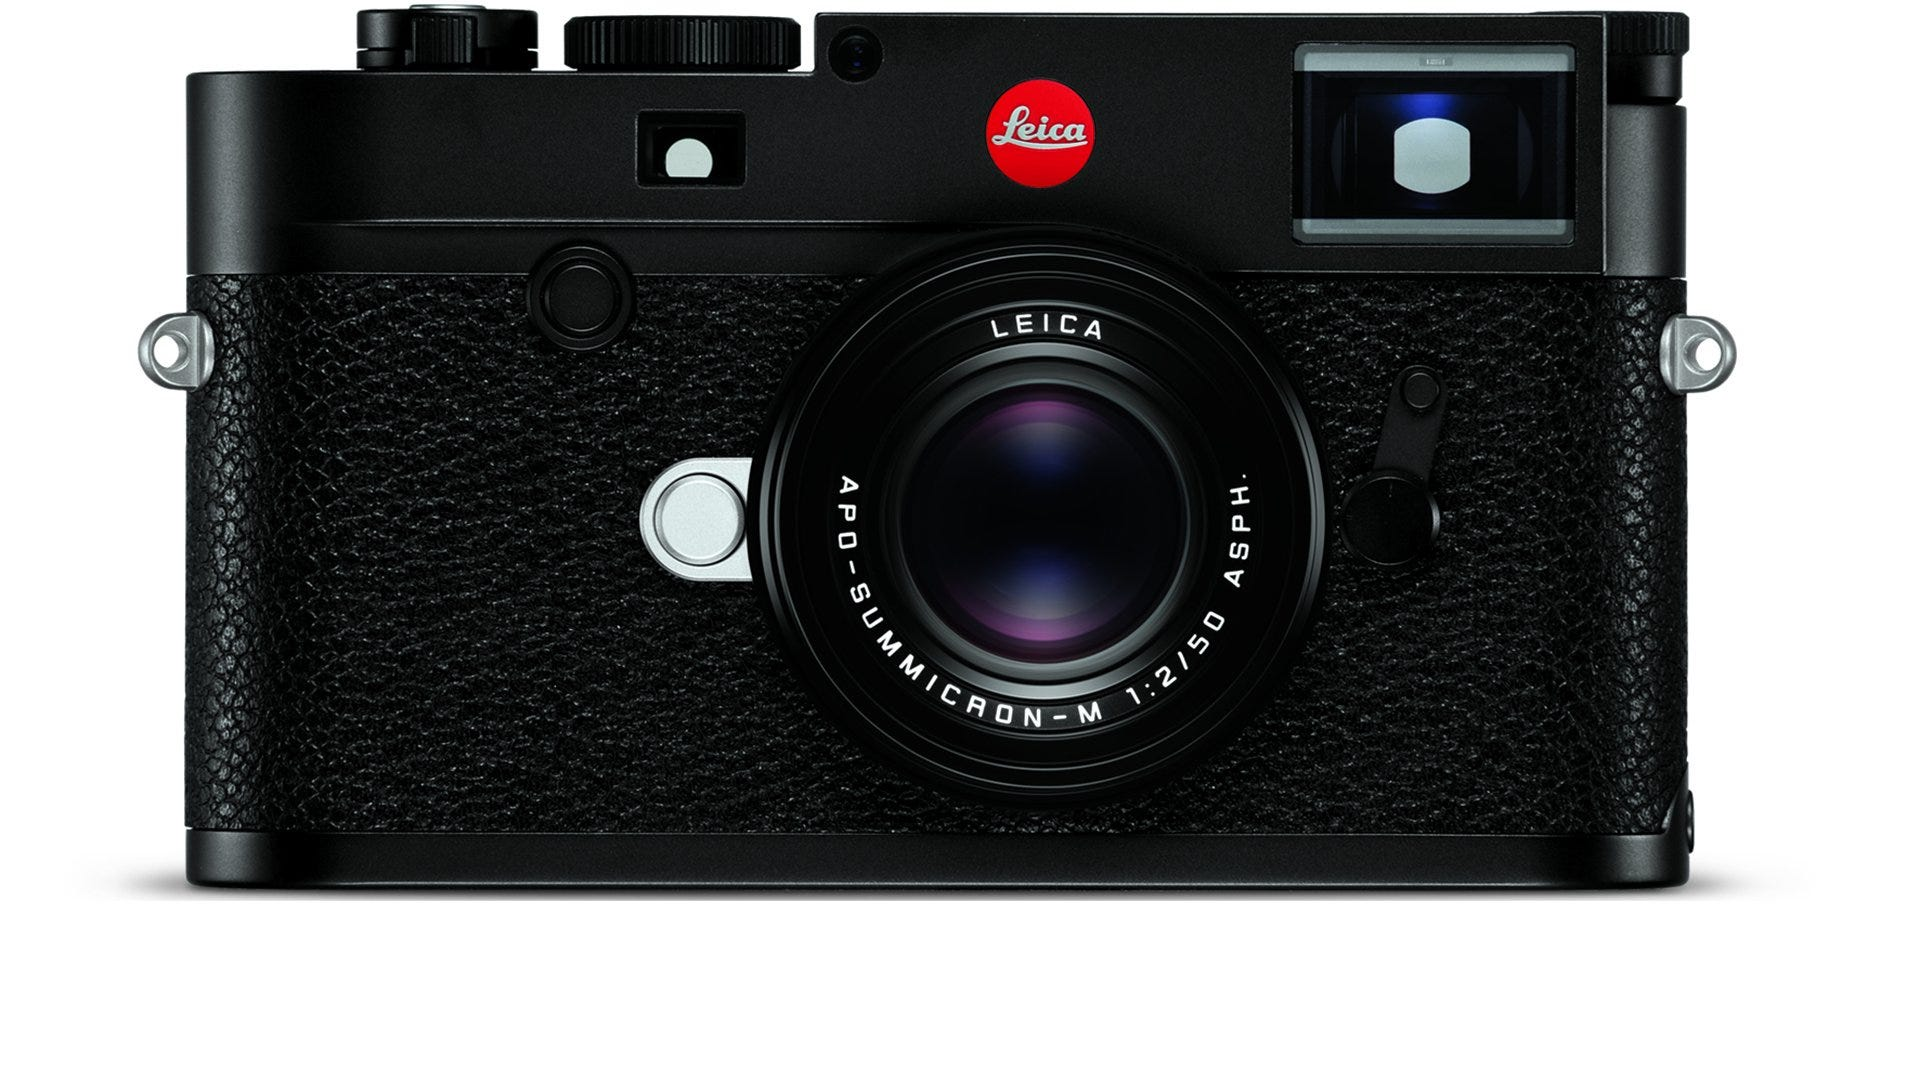 Leica M10 Revealed: Thinner, Faster Digital Rangefinder Camera In A